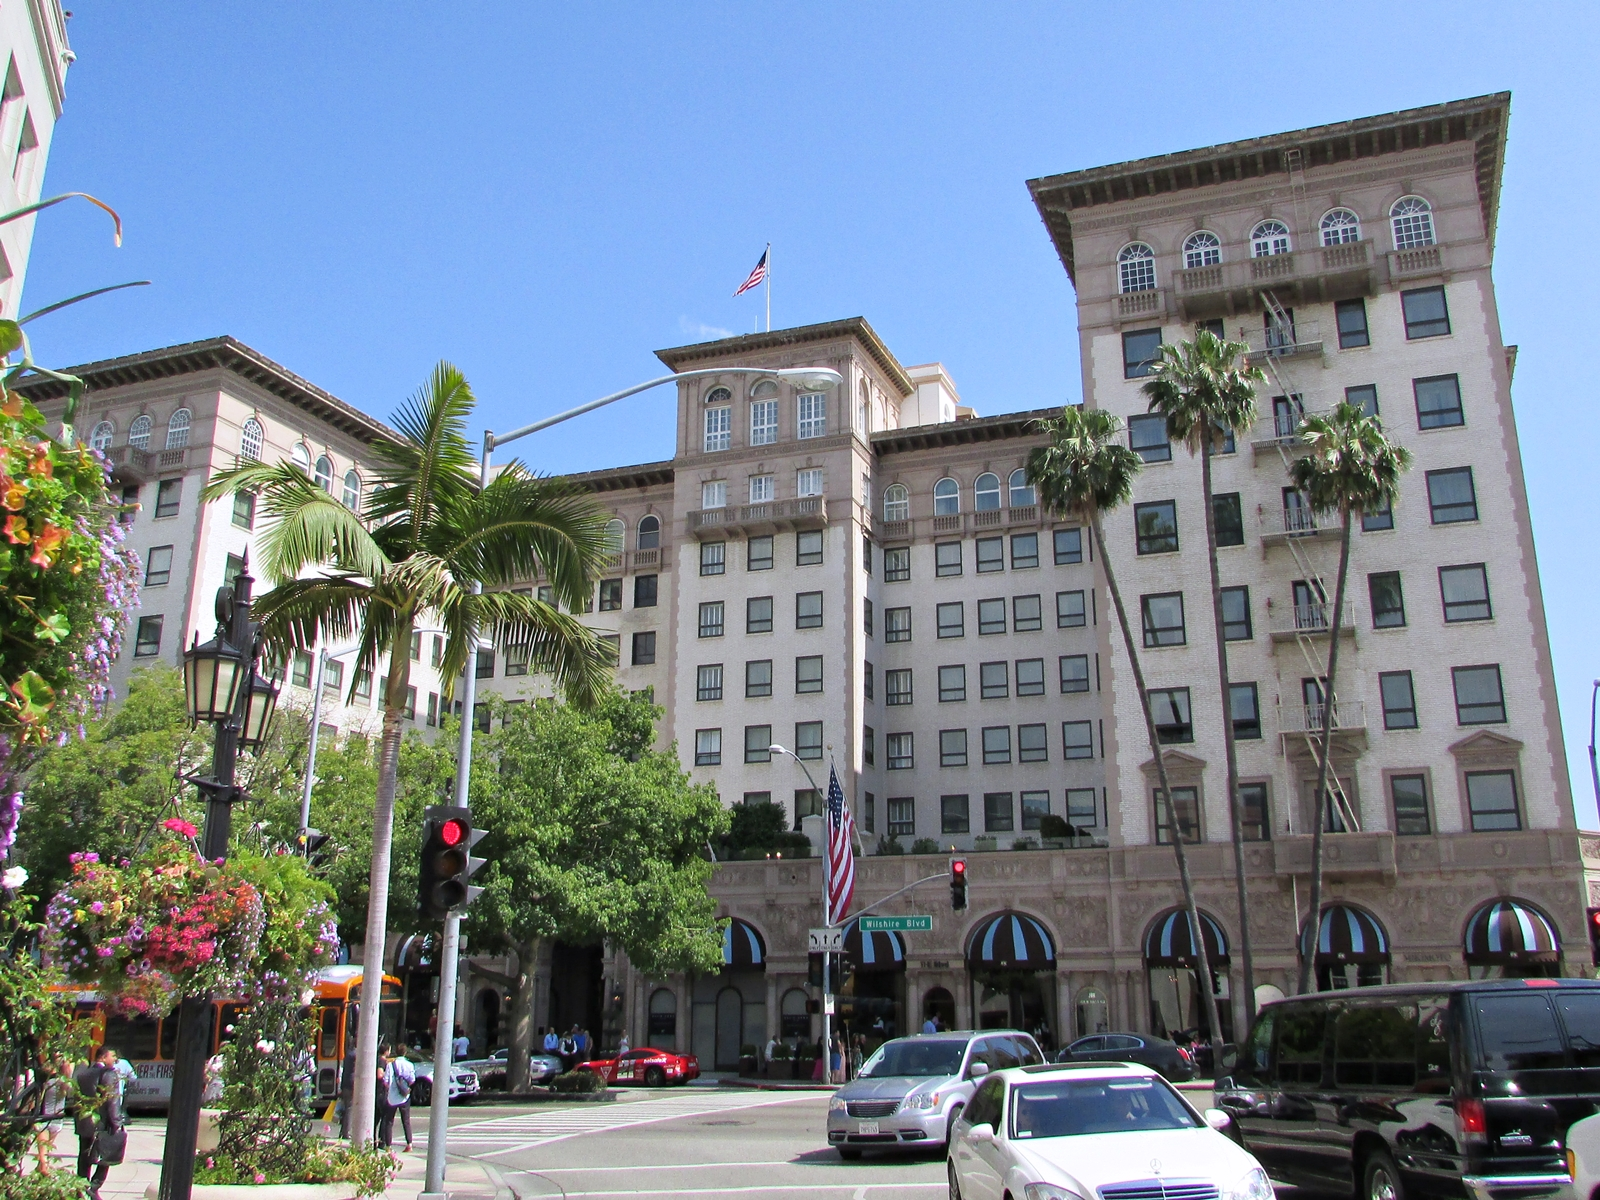 Rodeo Drive - The Beverly Hills Hotel - USA Rundreise - Amerika Roadtrip - Fashionladyloves by Tamara Wagner - Travelblog